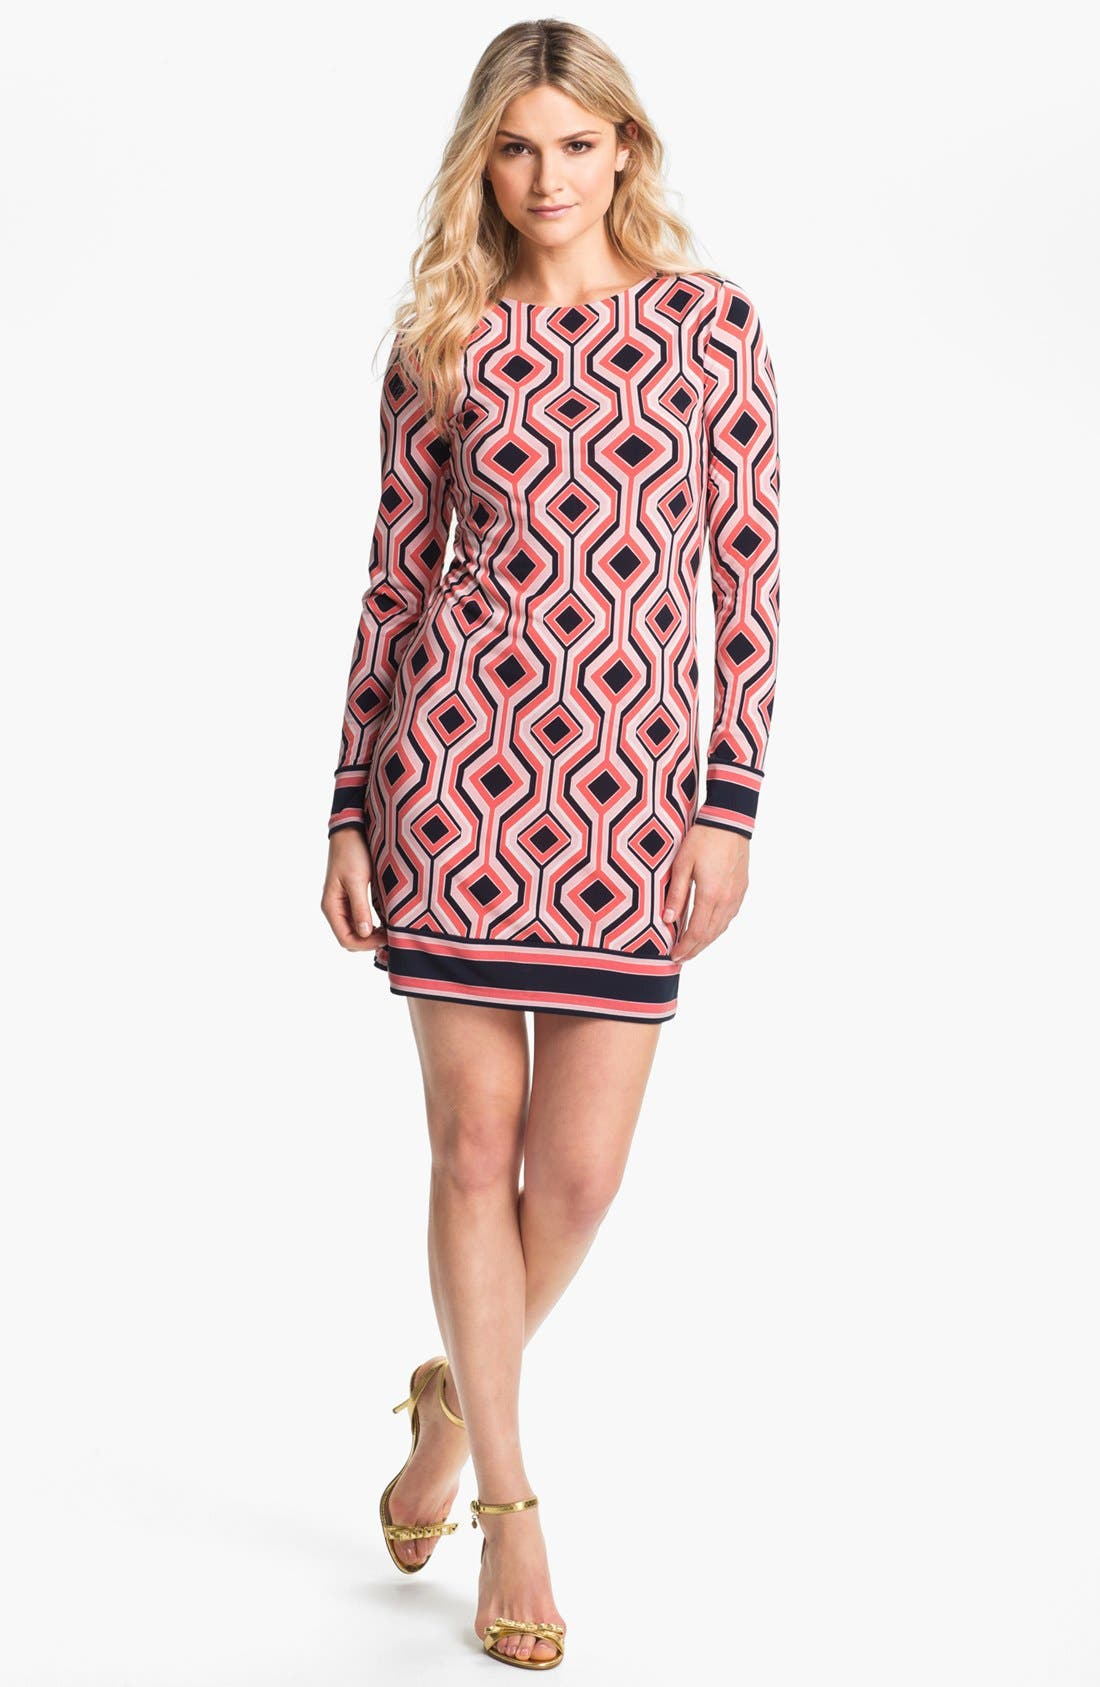 Alternate Image 1 Selected - MICHAEL Michael Kors 'Argyle' Print Shift Dress (Petite)